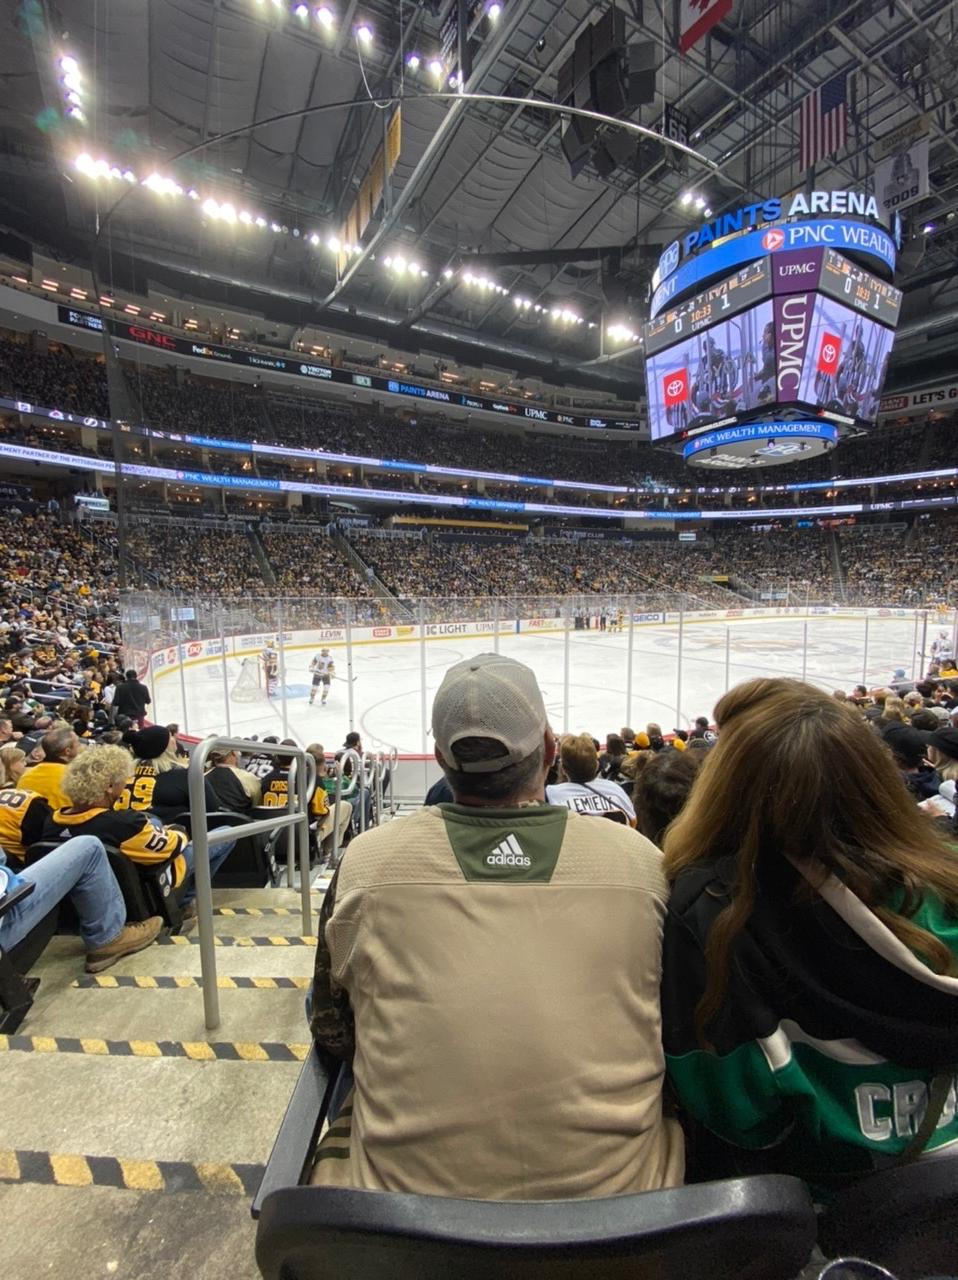 PPG Paints Arena Section 104 Row J Seat 26